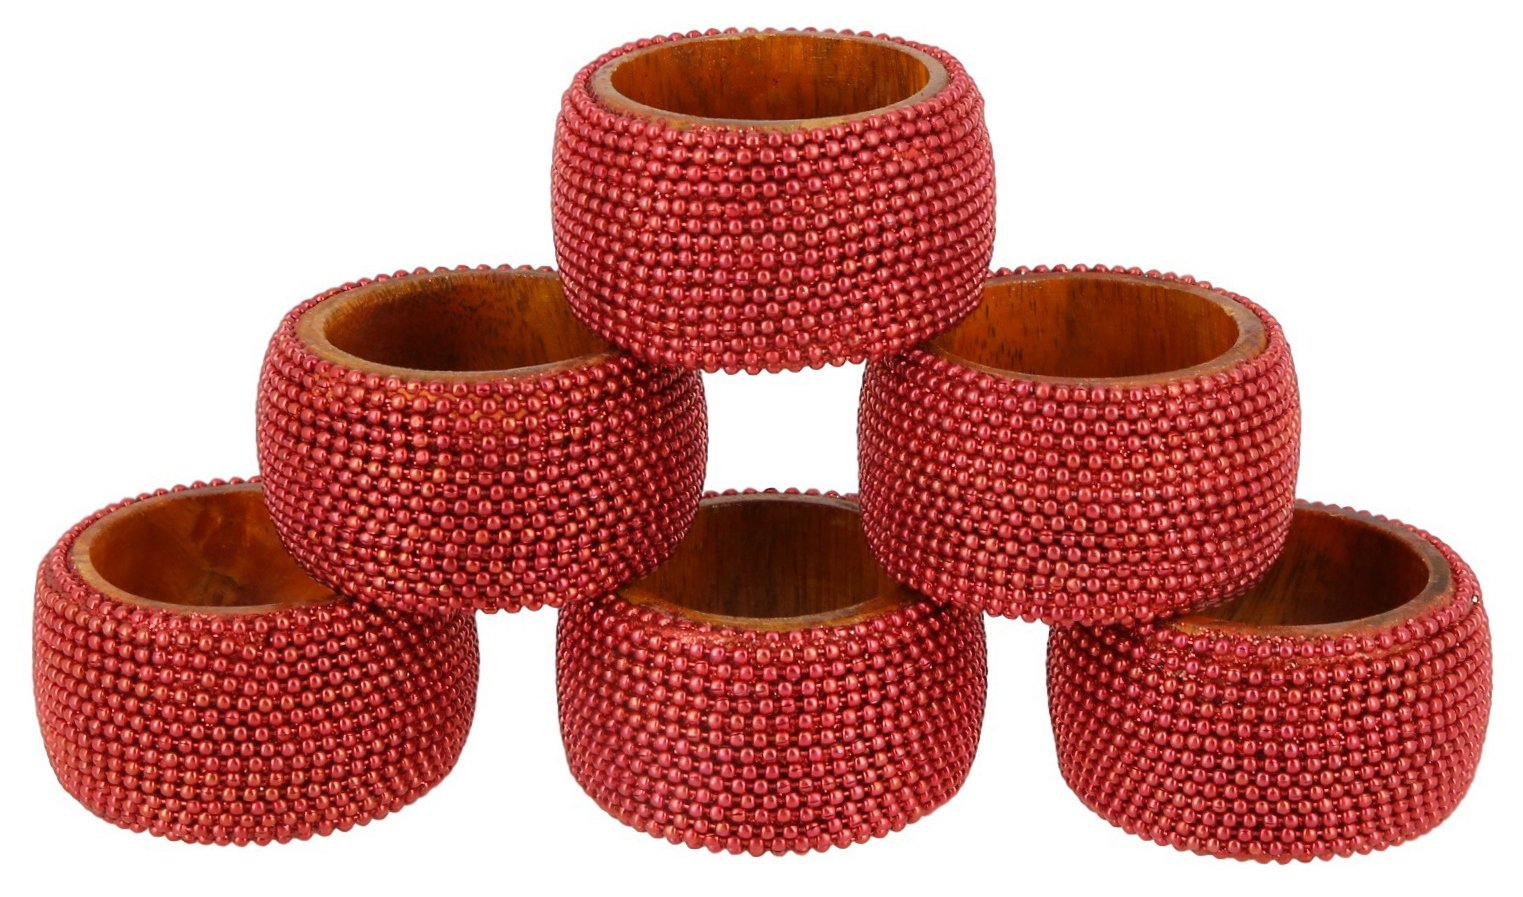 Shalinindia Handmade Indian Red Aluminum Ball Chain Wooden Napkin Ring Set - Set of 6 Ring Napkin Holders - Industrial Chic Look - Made in India